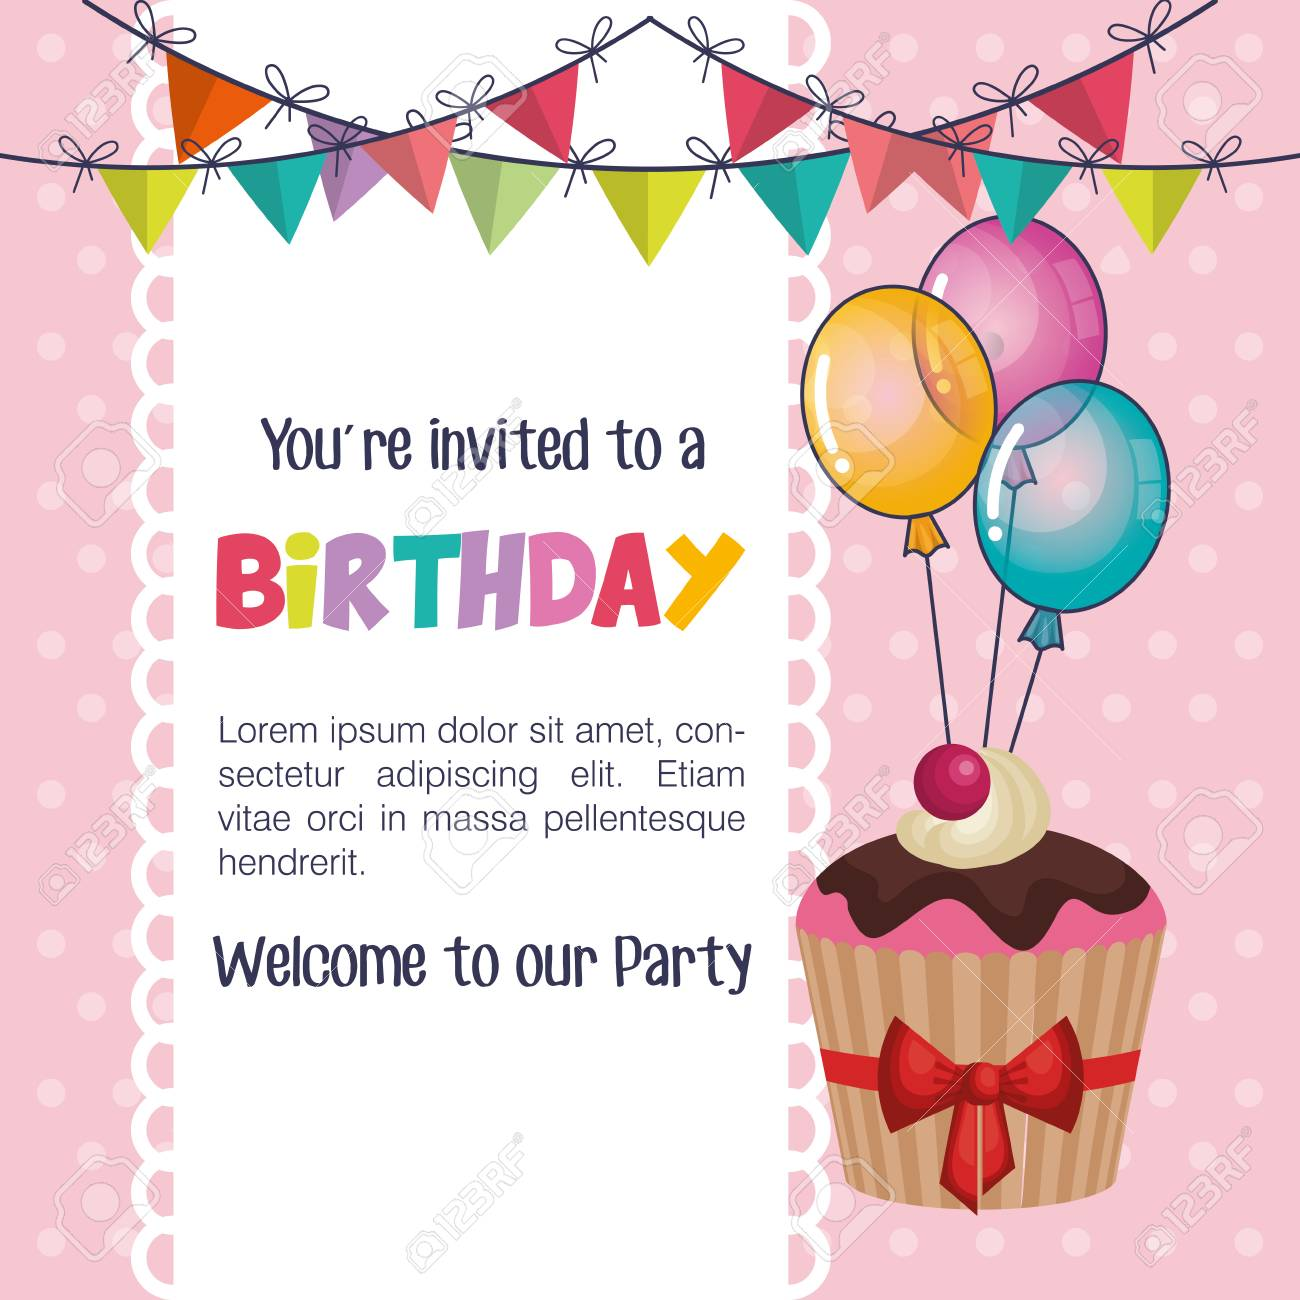 Happy Birthday Party Invitation With Sweet Cupcake Illustration